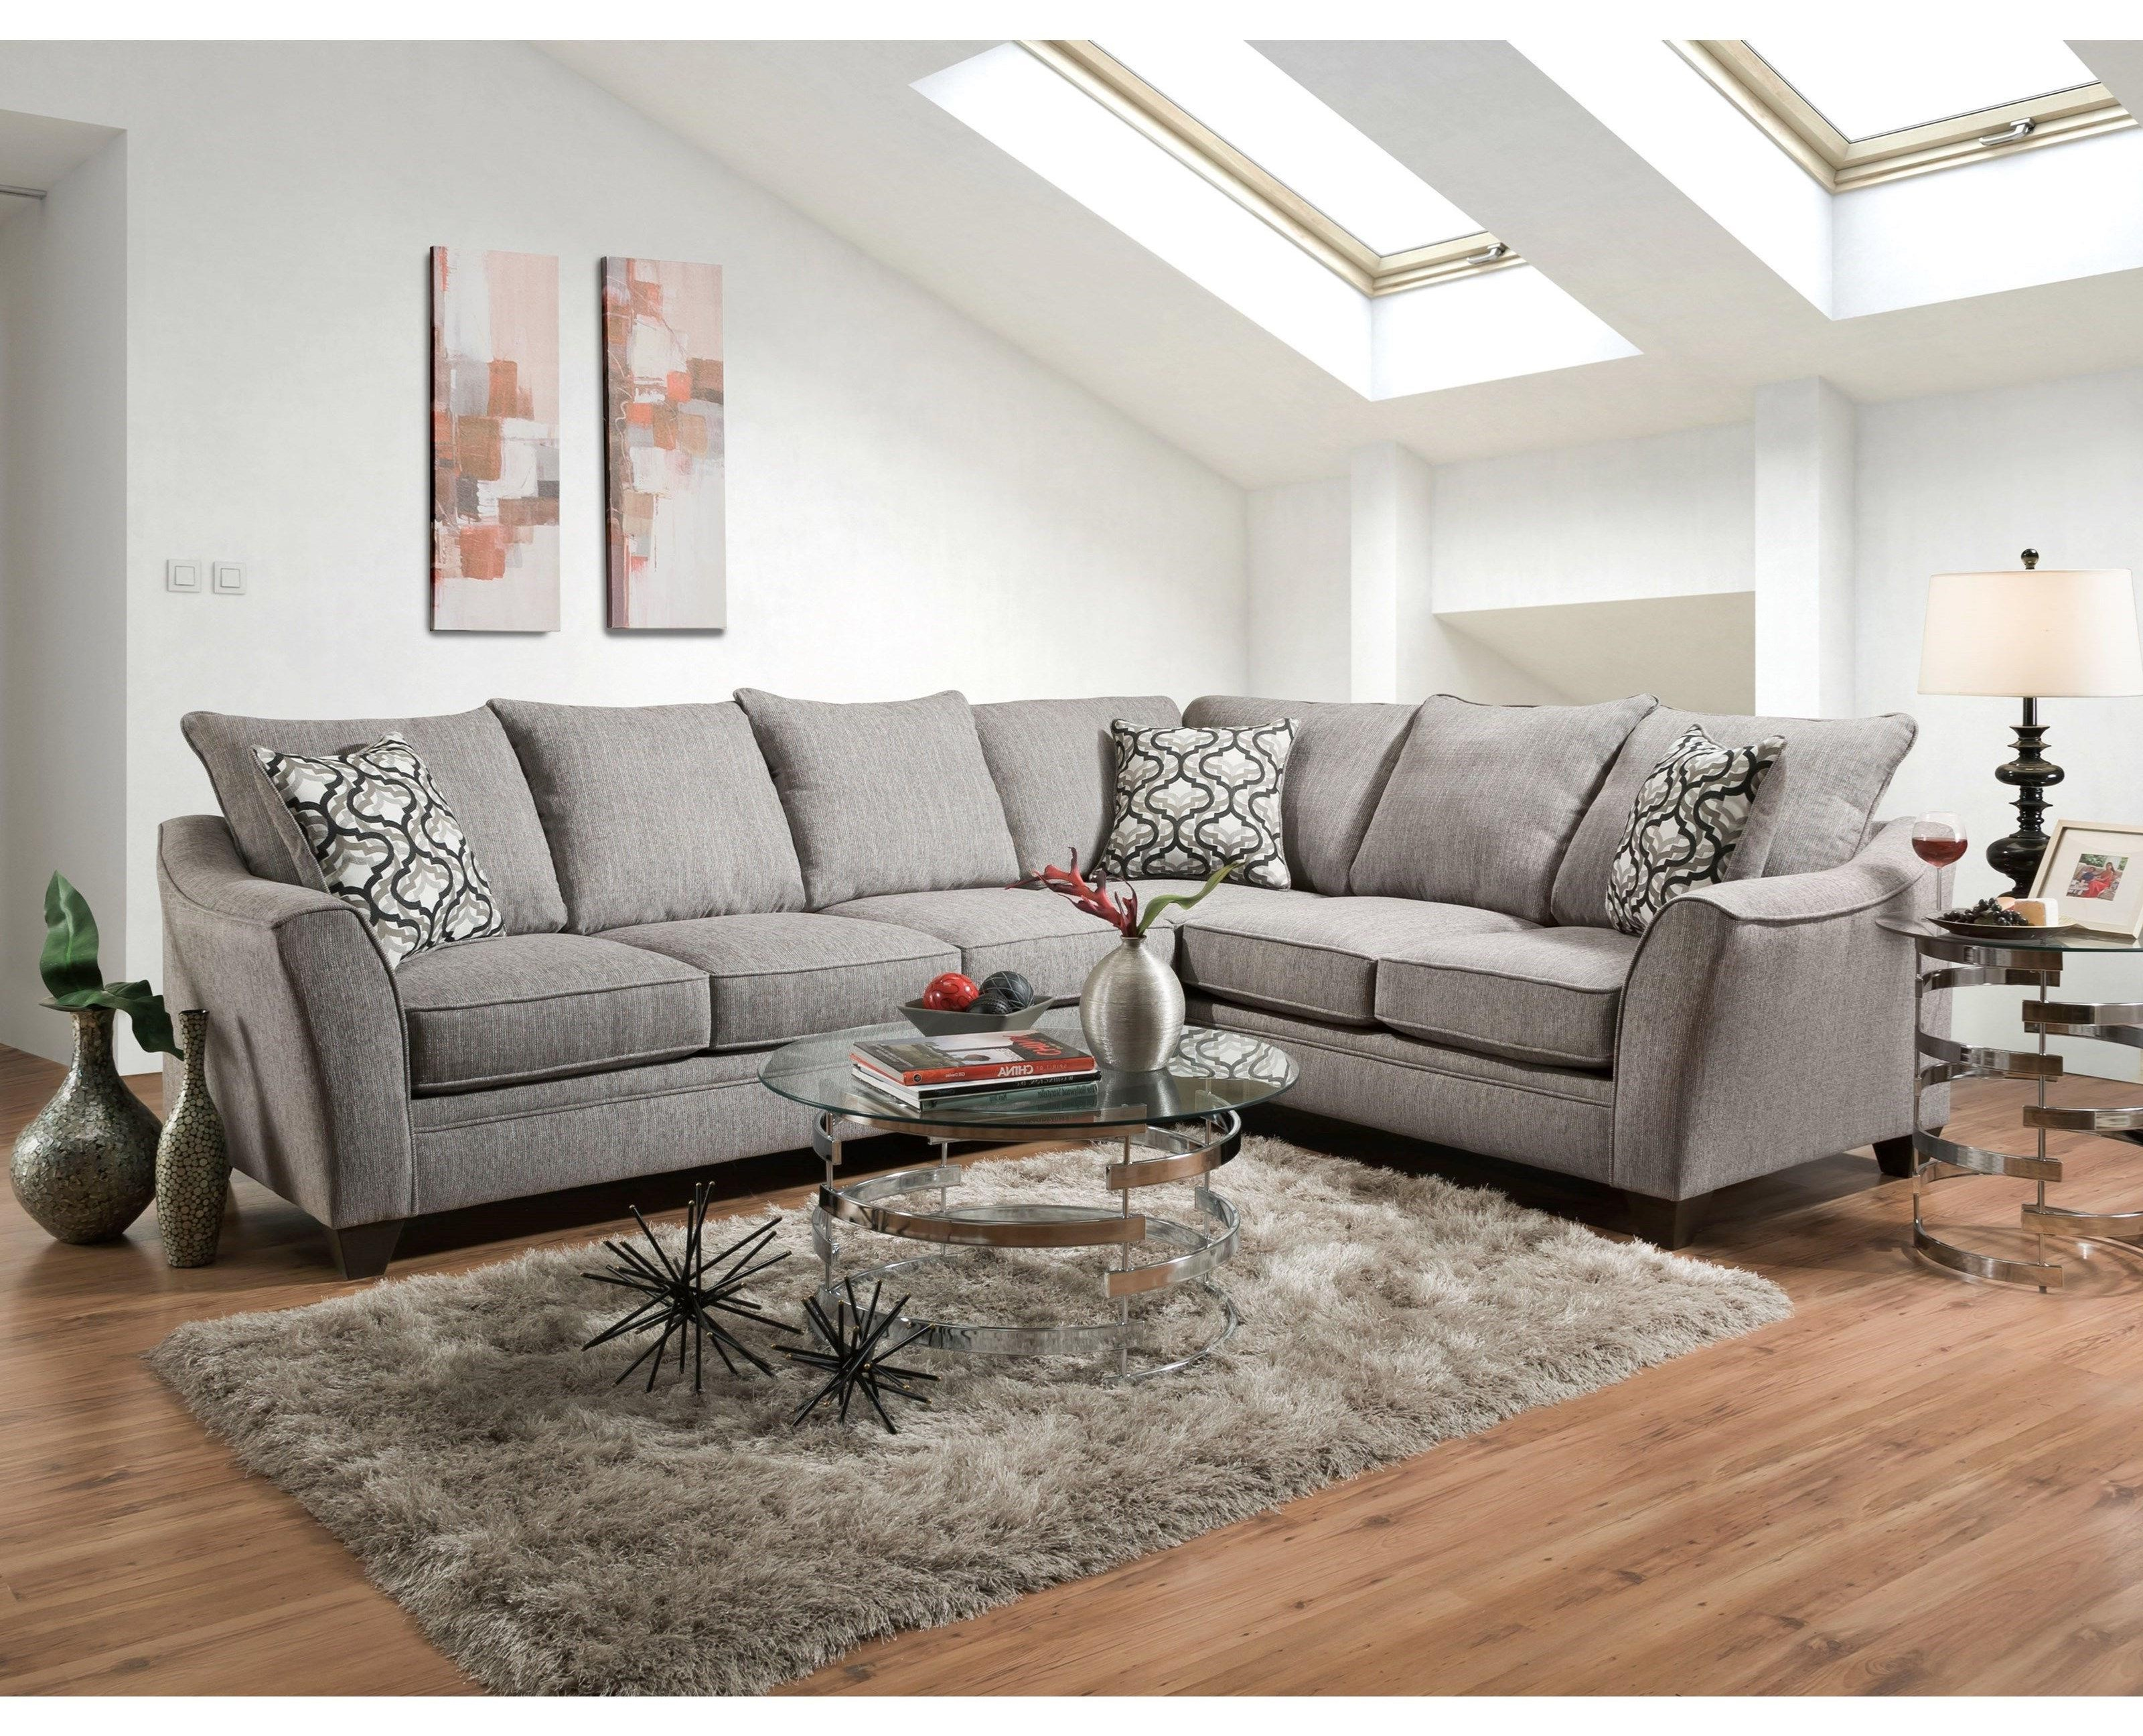 American Furniture 4810 5 Seat Sectional Sofa | Miskelly Furniture ...